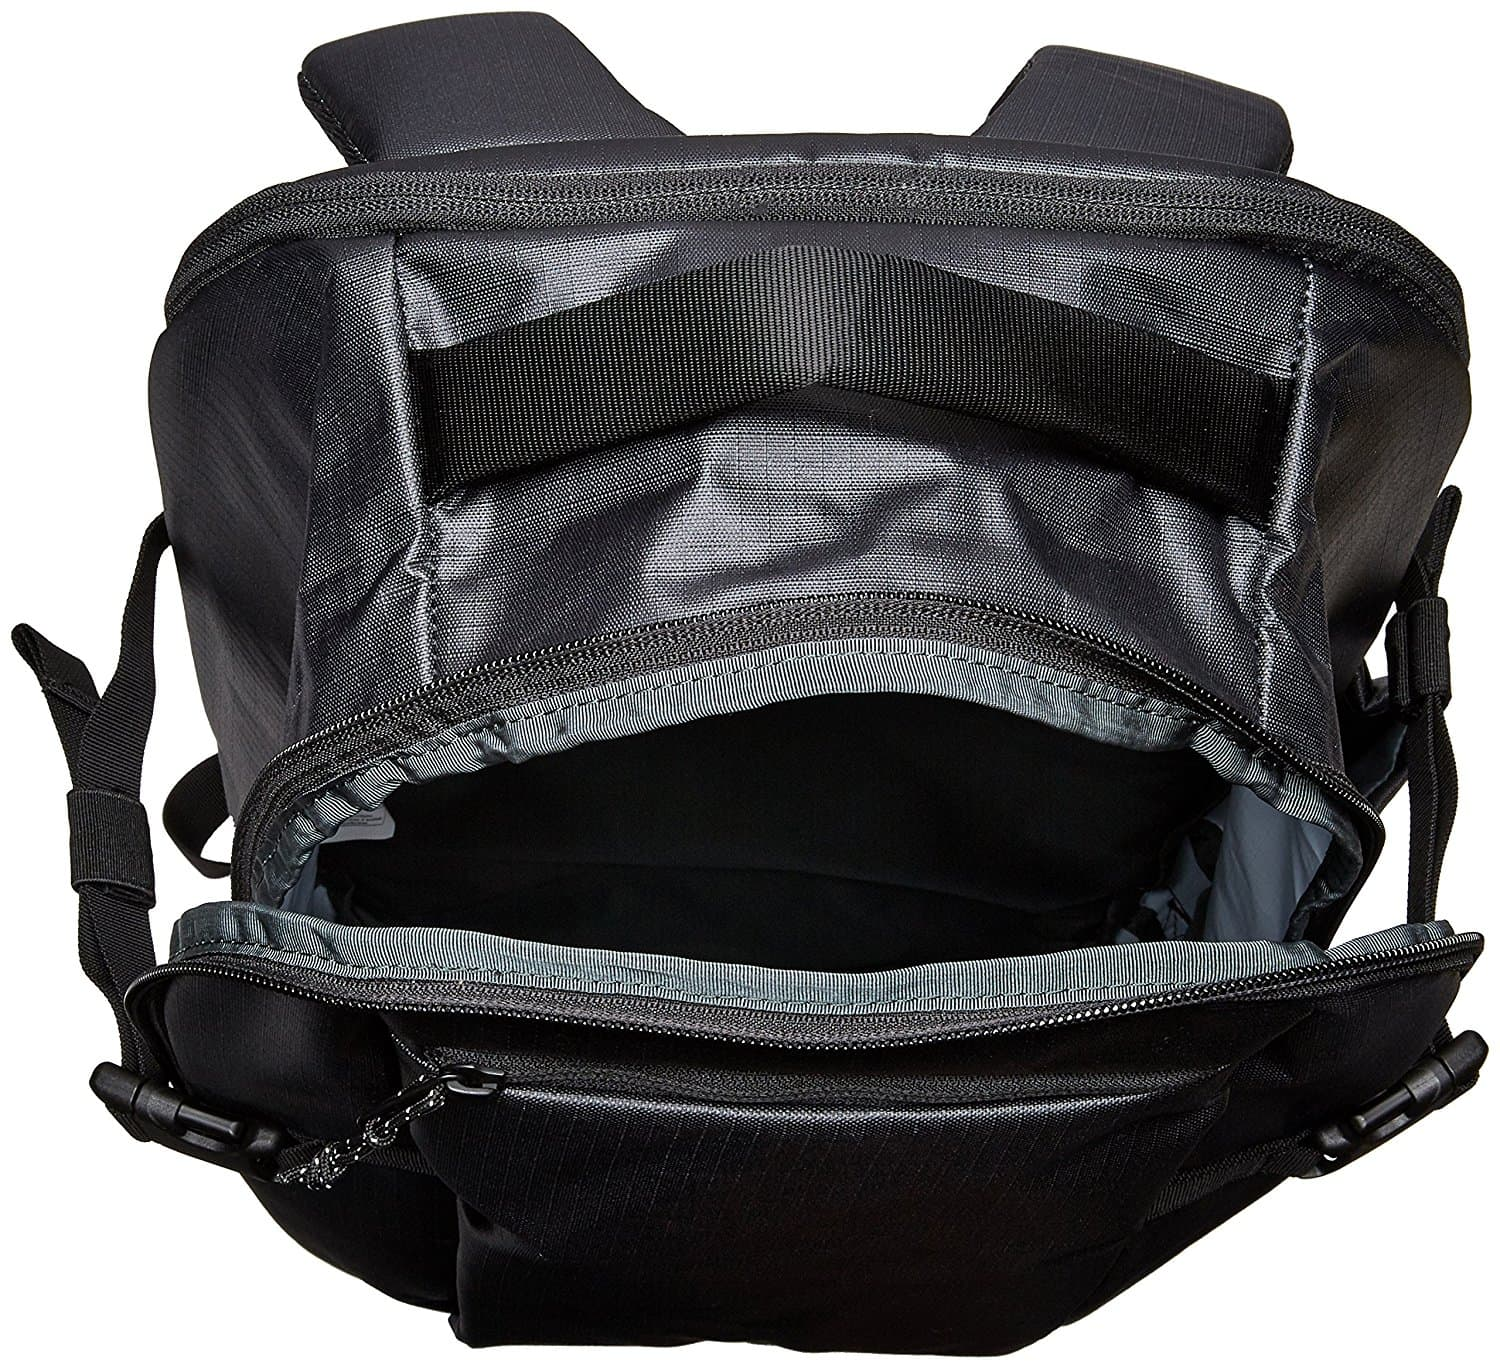 Timbuk2 Blink Pack [Jet Black] $53.08